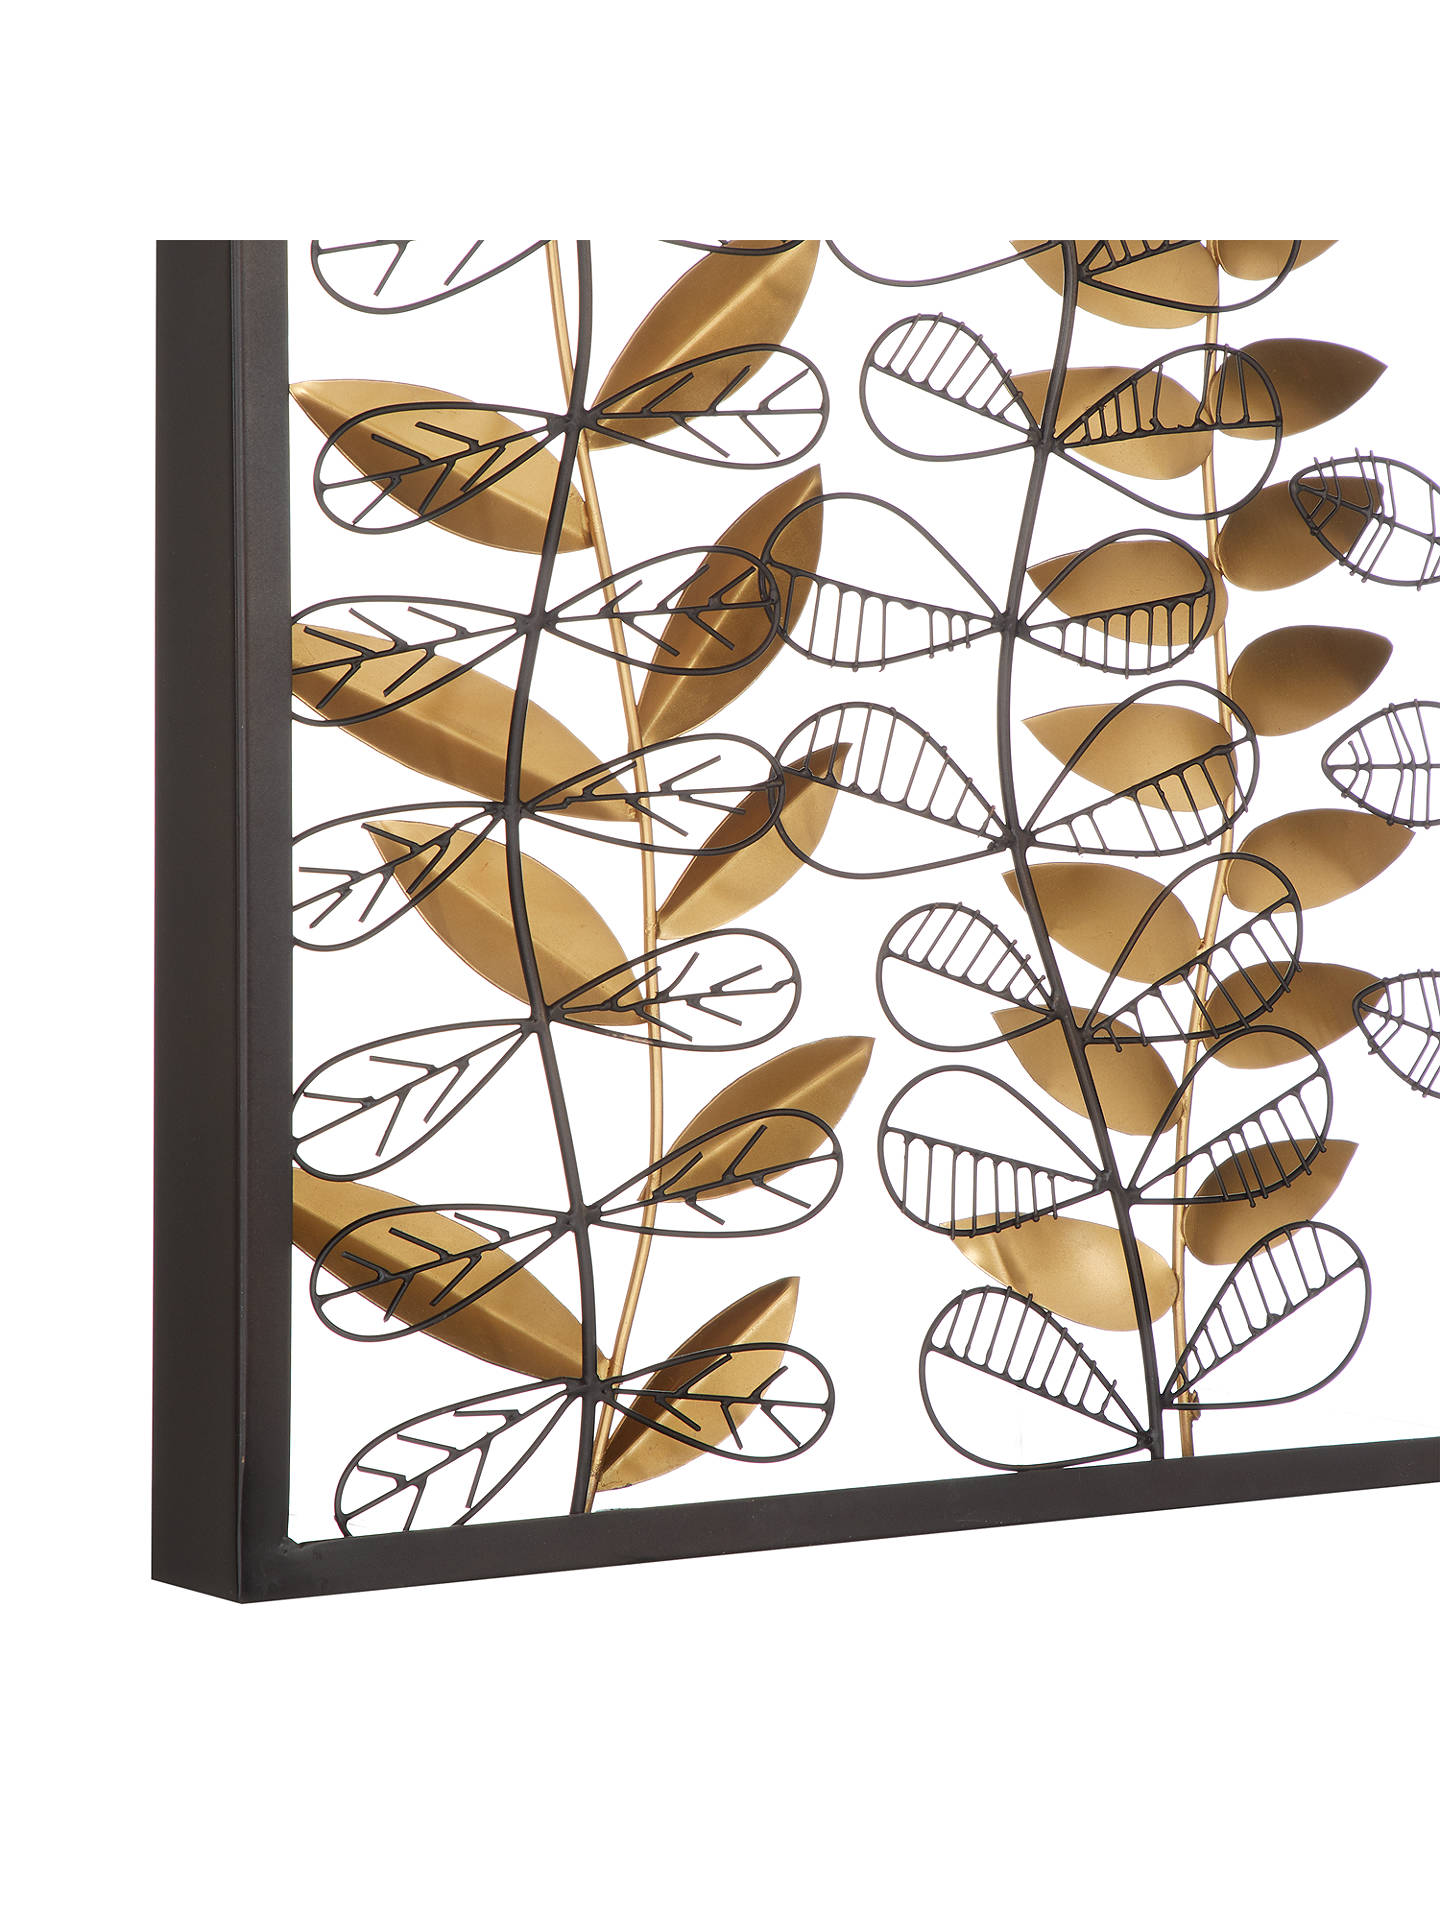 BuyJohn Lewis & Partners Framed Leaves Wall Sculpture, Black/Gold Online at johnlewis.com